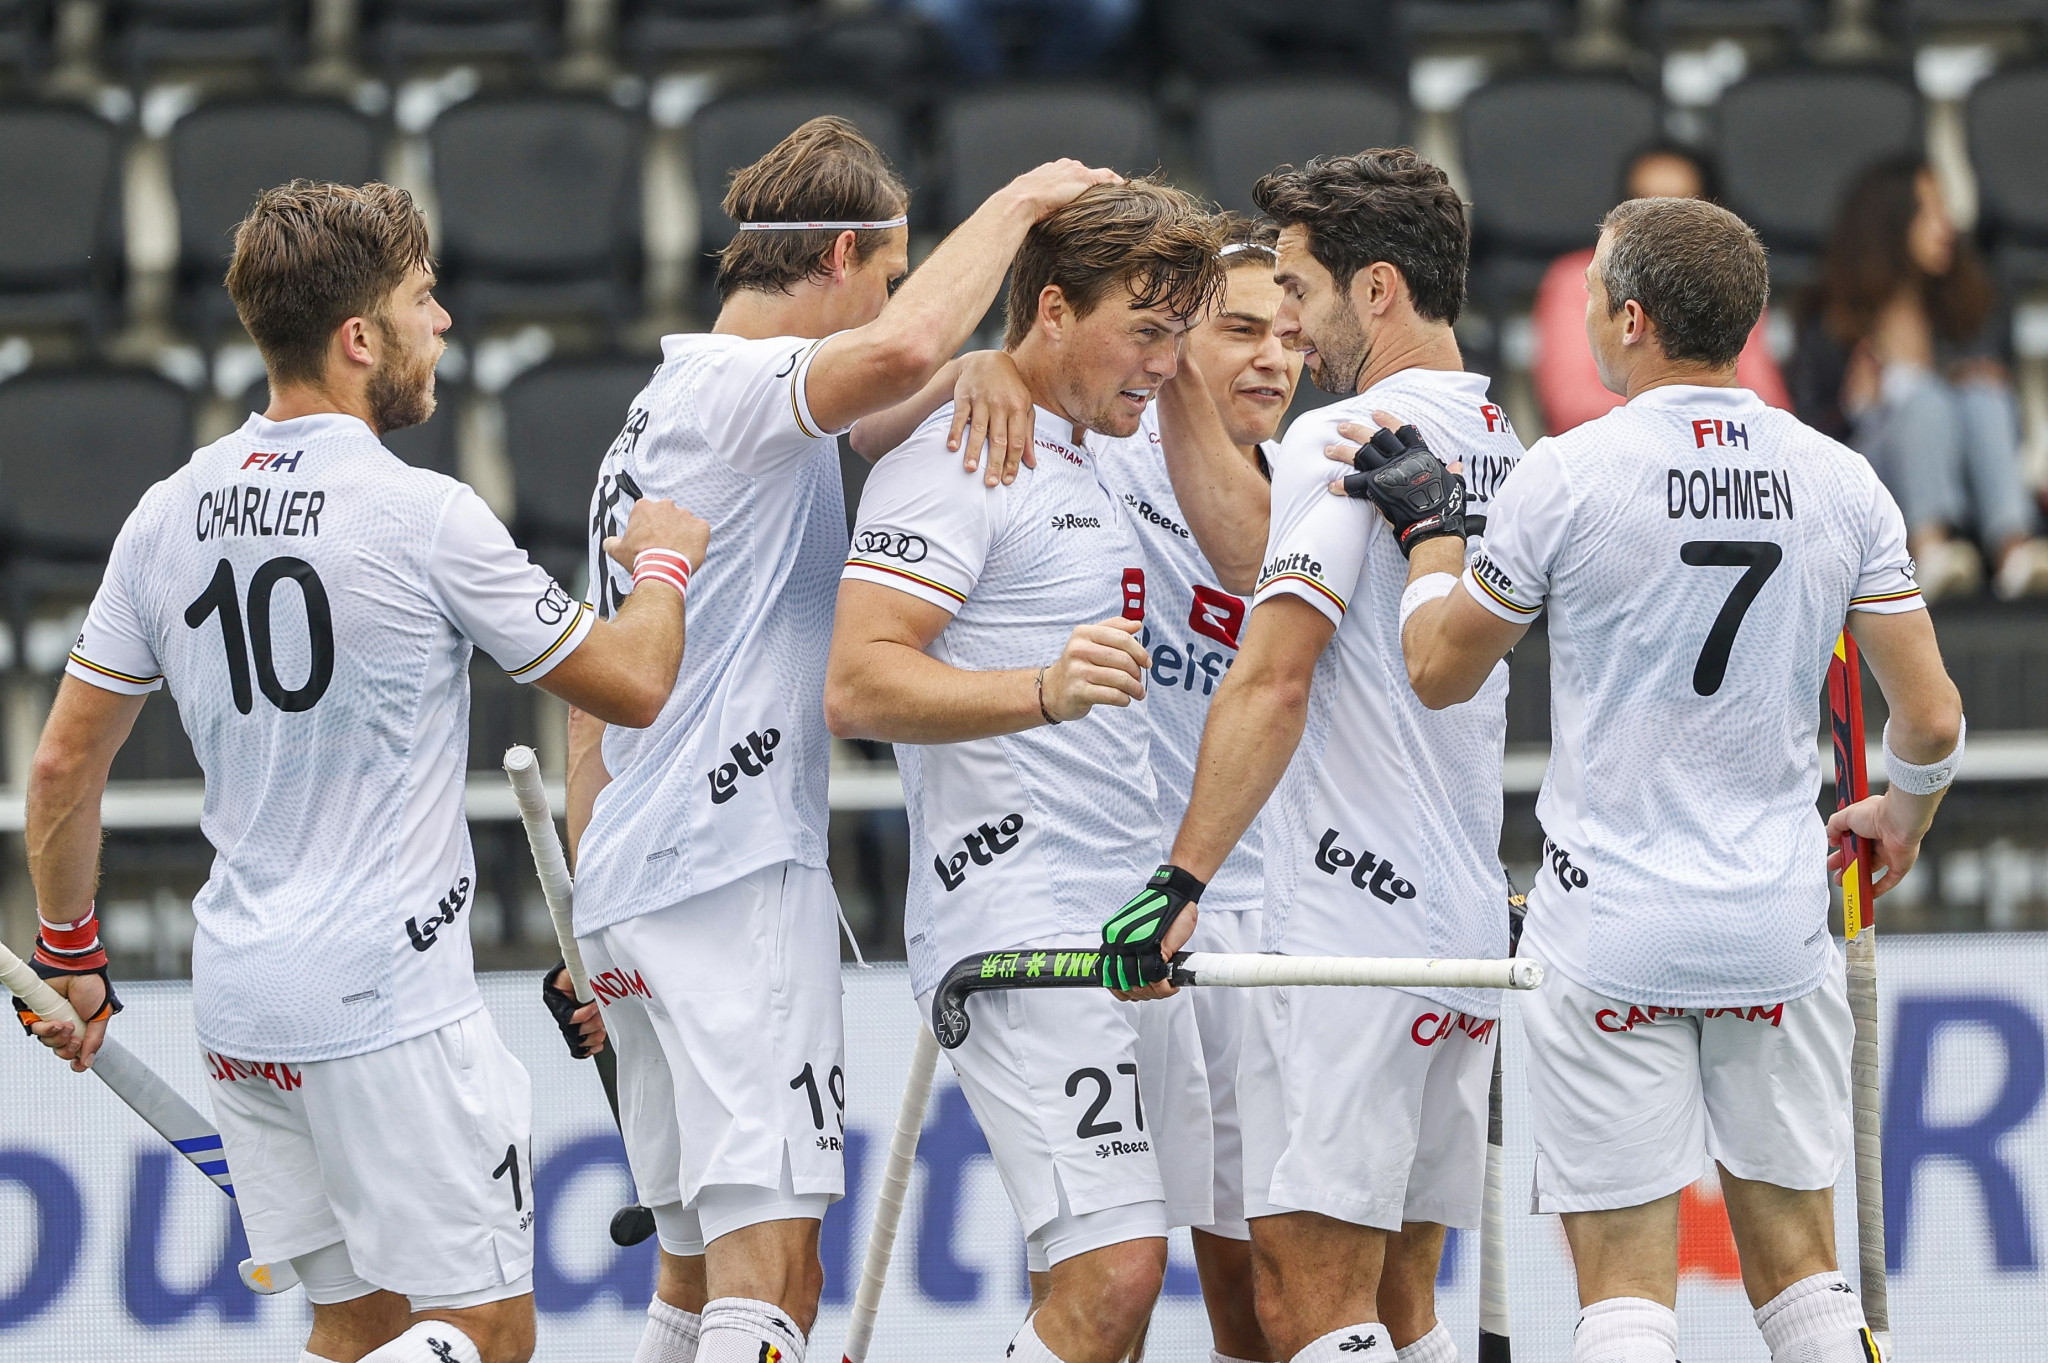 Champions Belgium begin men's EuroHockey Championship campaign with victory over Spain